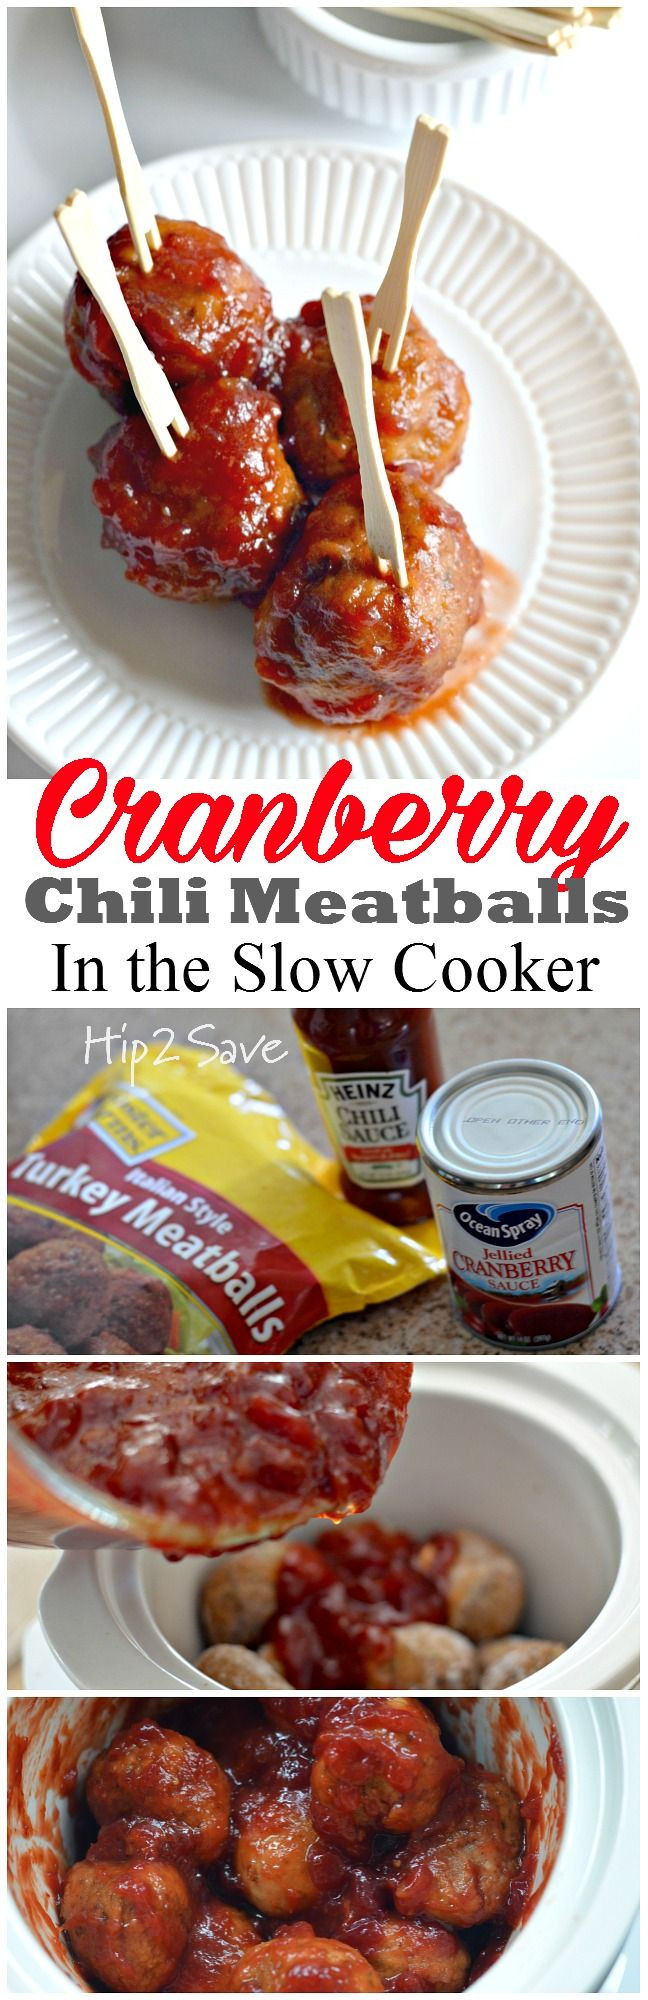 Gluten Free Appetizers Trader Joe'S  Slow Cooker Cranberry Chili Meatballs